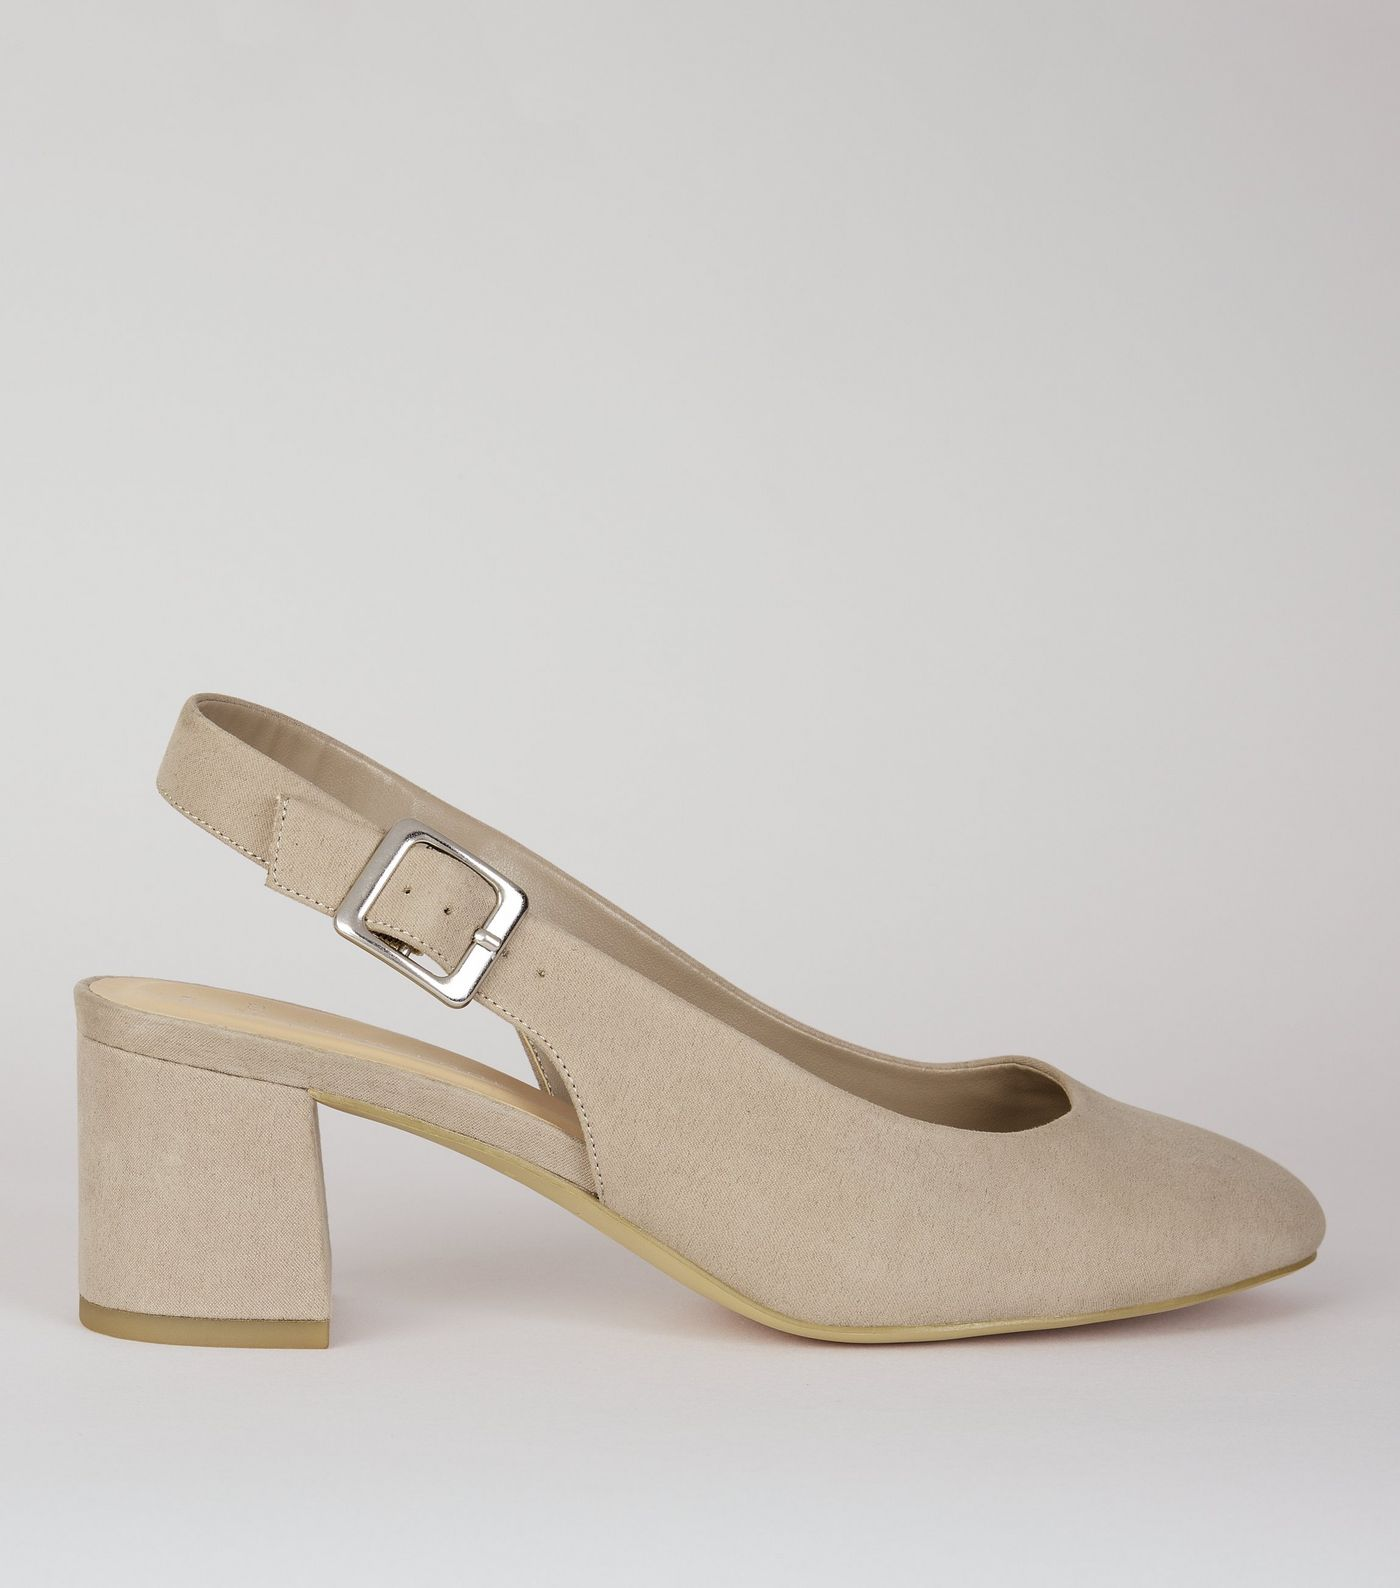 wide-fit-grey-suedette-sling-back-heels.jpg